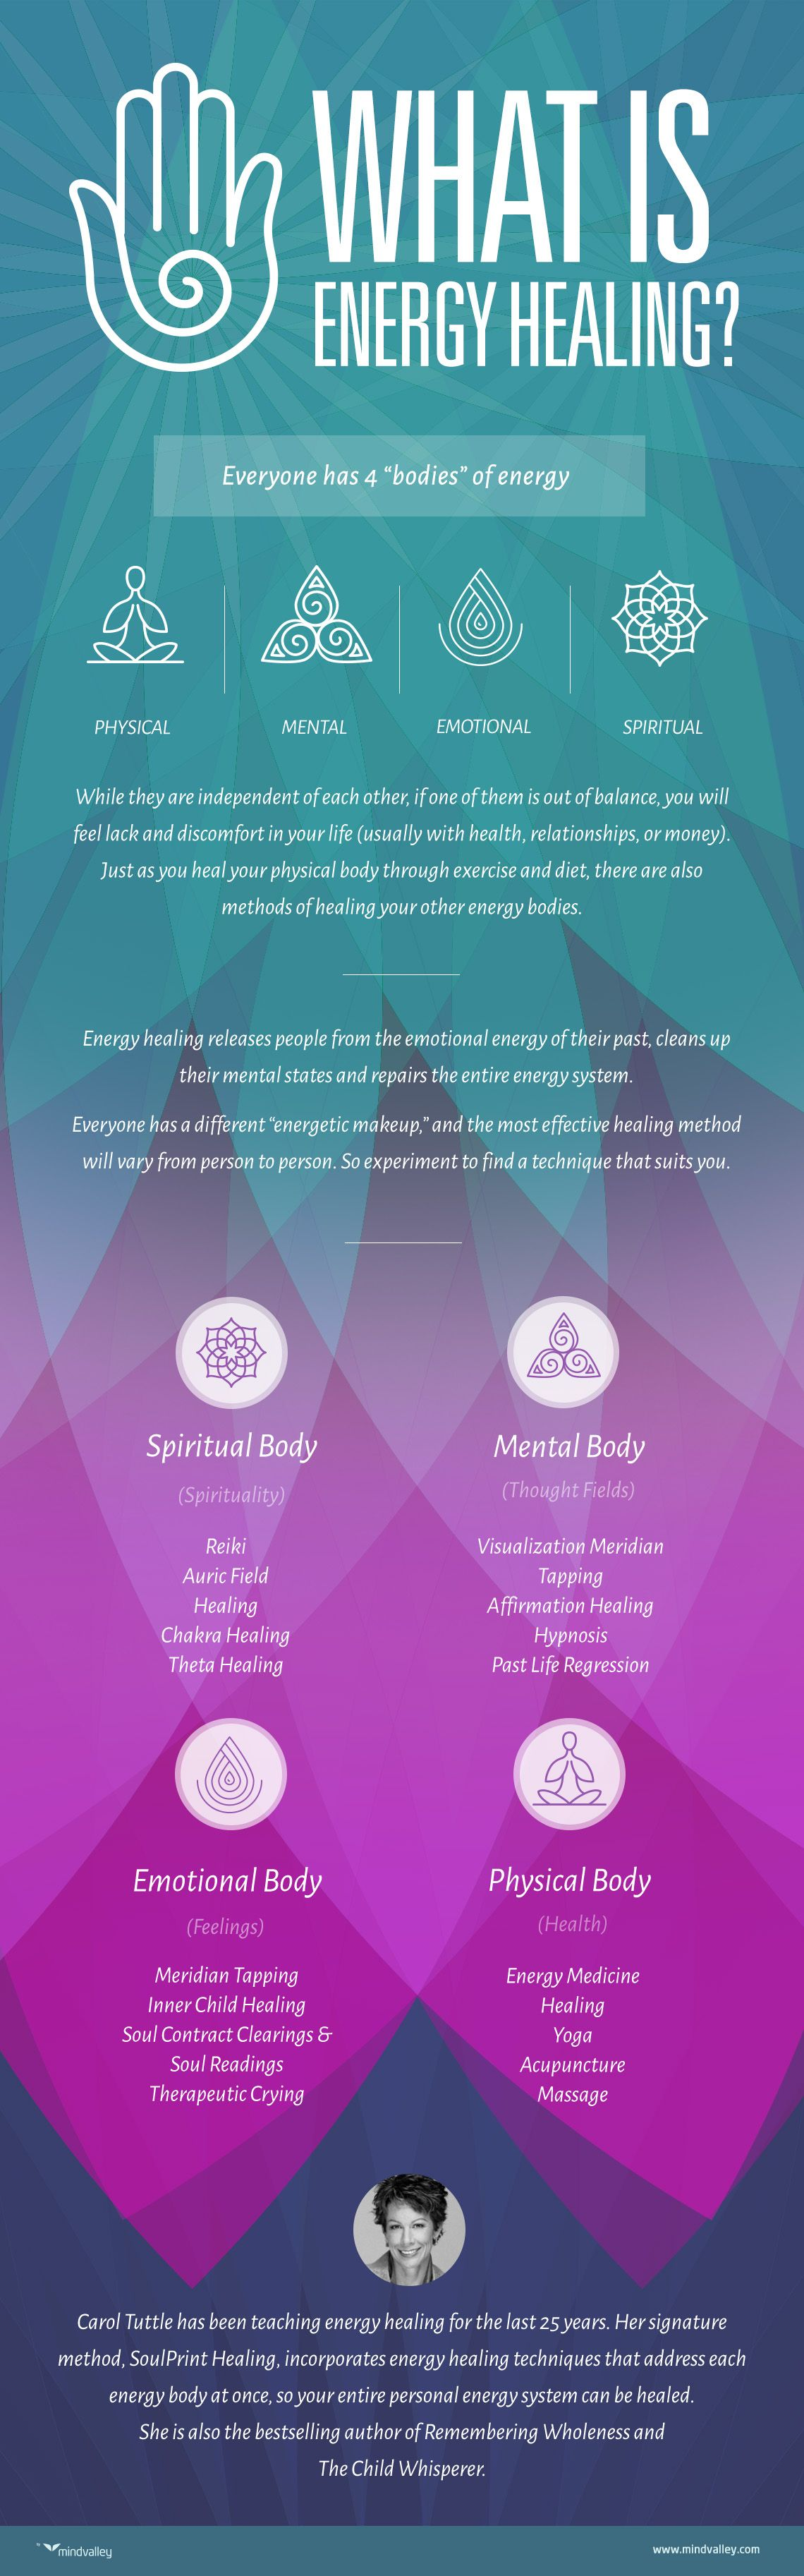 energy healer dating Holistic healing: body, mind, and spirit channeling healing energy list the spiritual girl's guide to dating article.